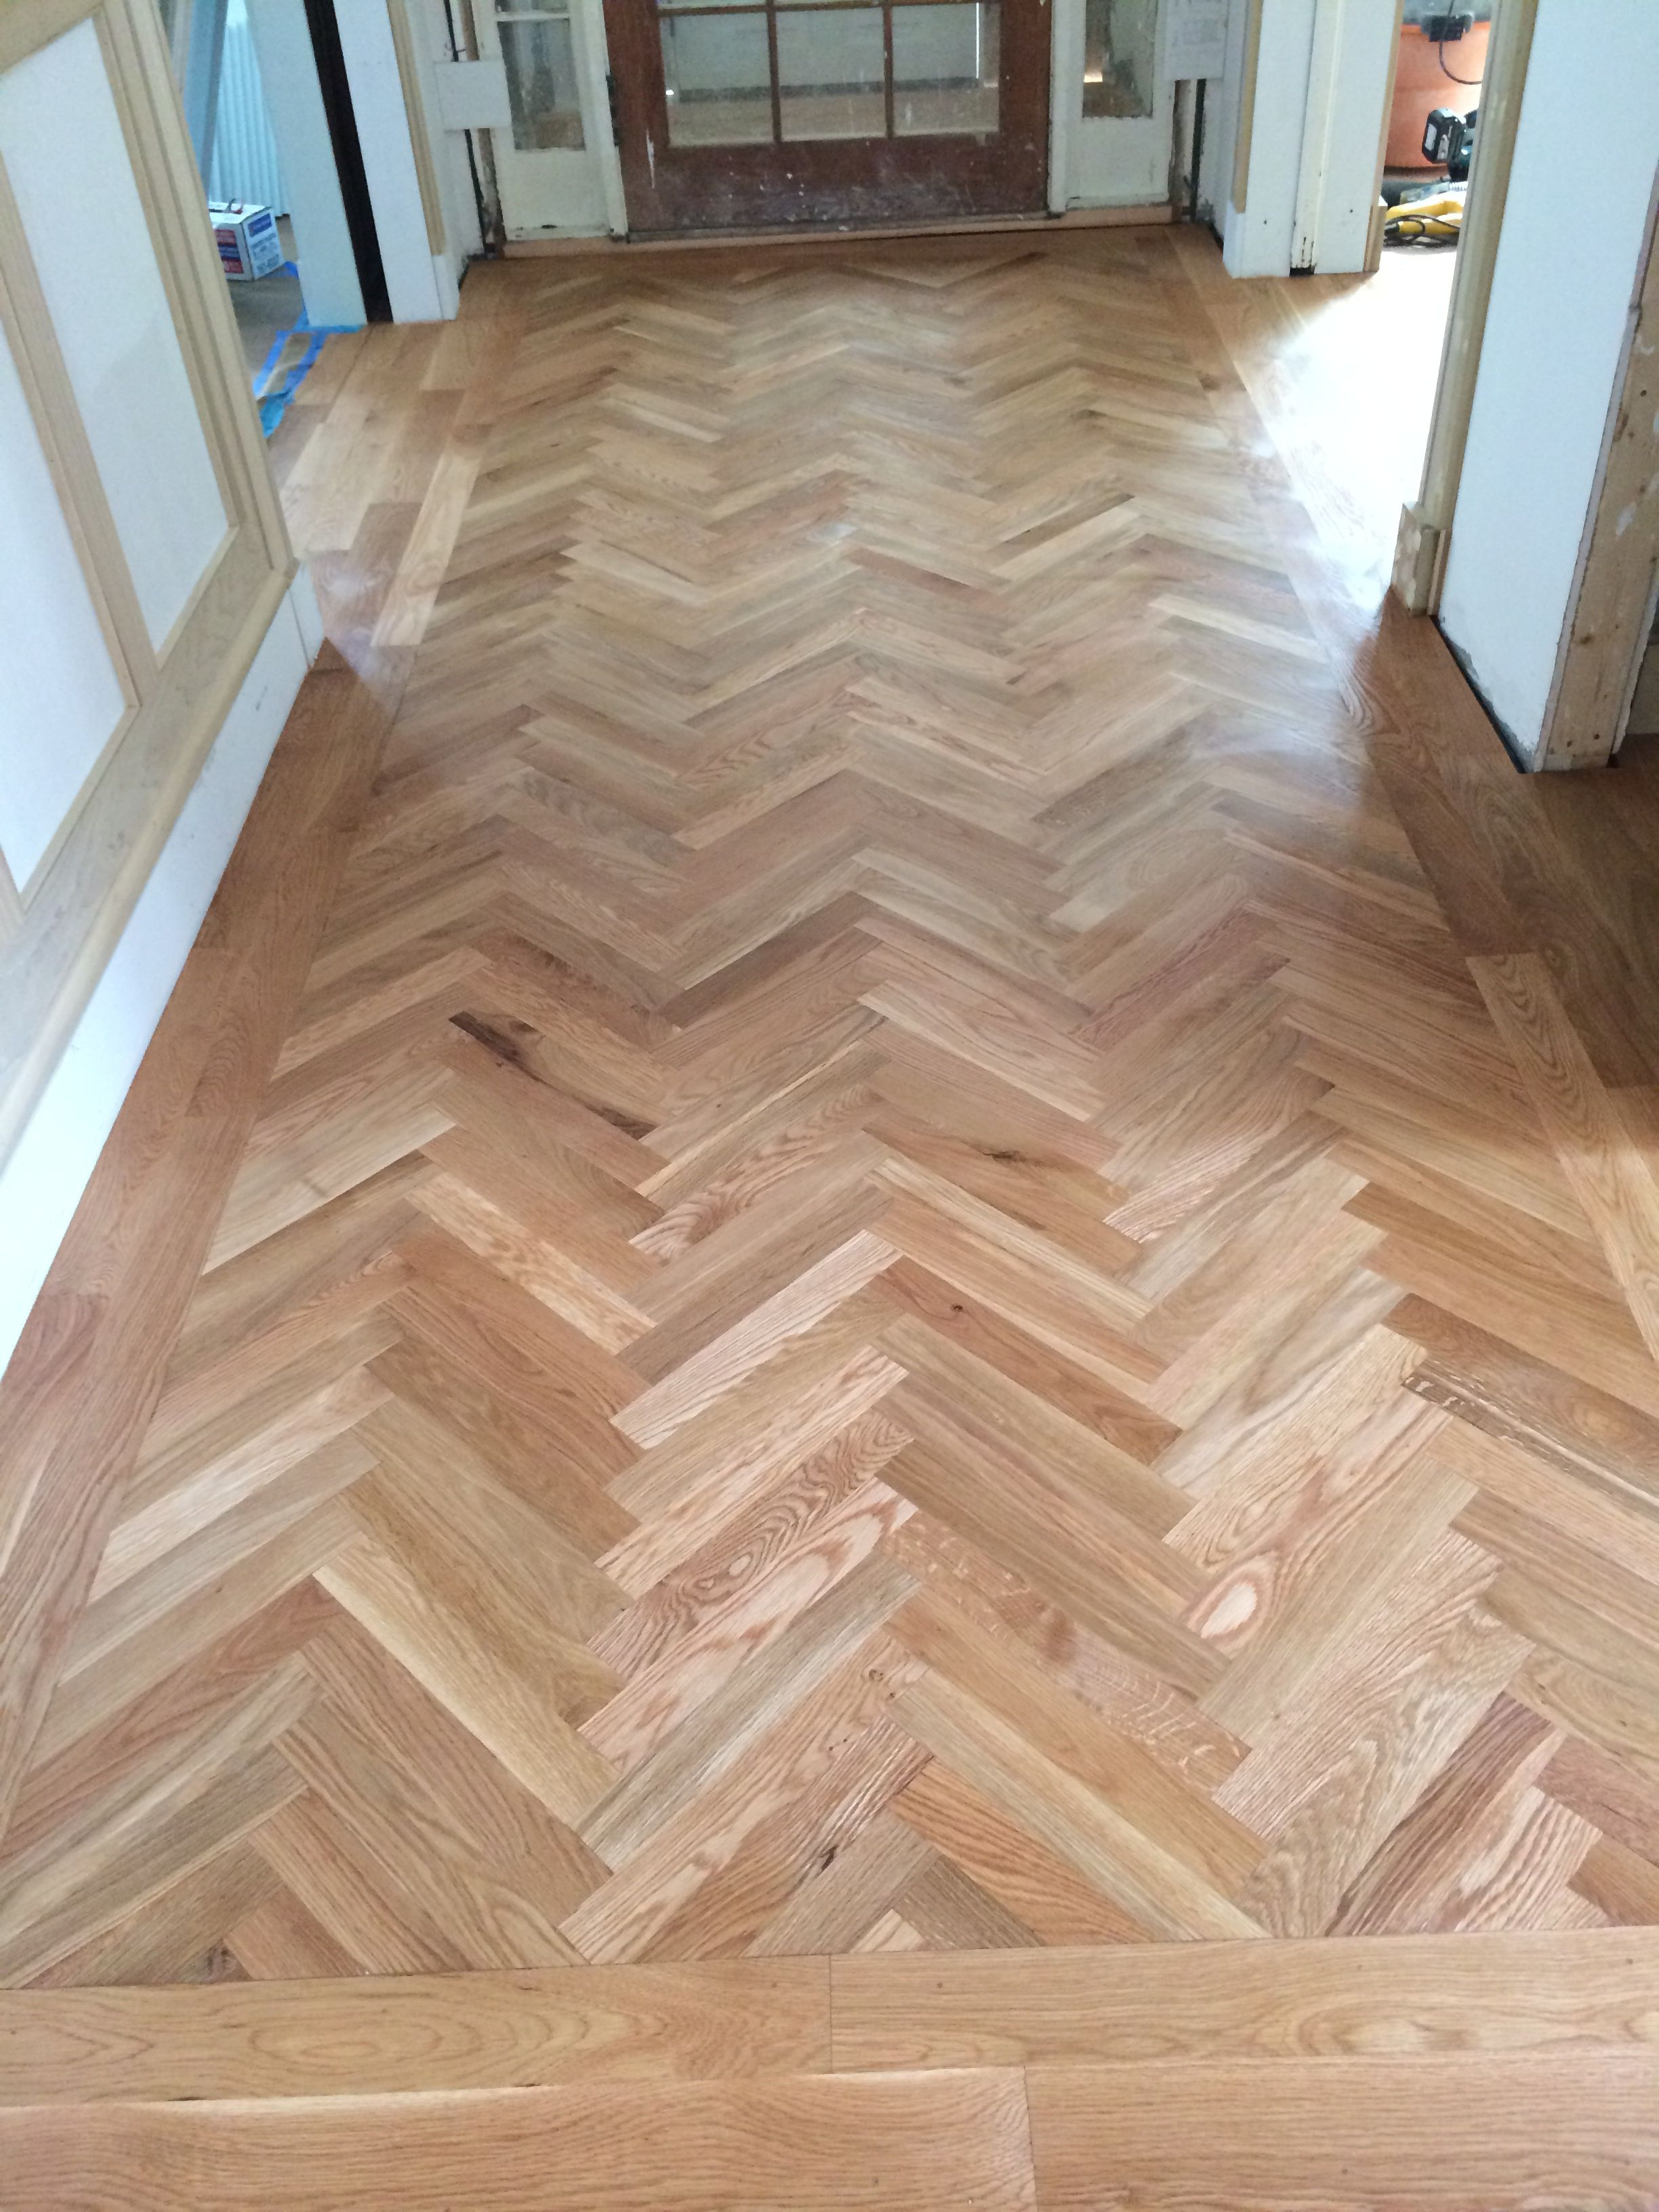 White Oak Herringbone Flooring Herringbone Wood Floor White Oak Hardwood Floors Hardwood Design